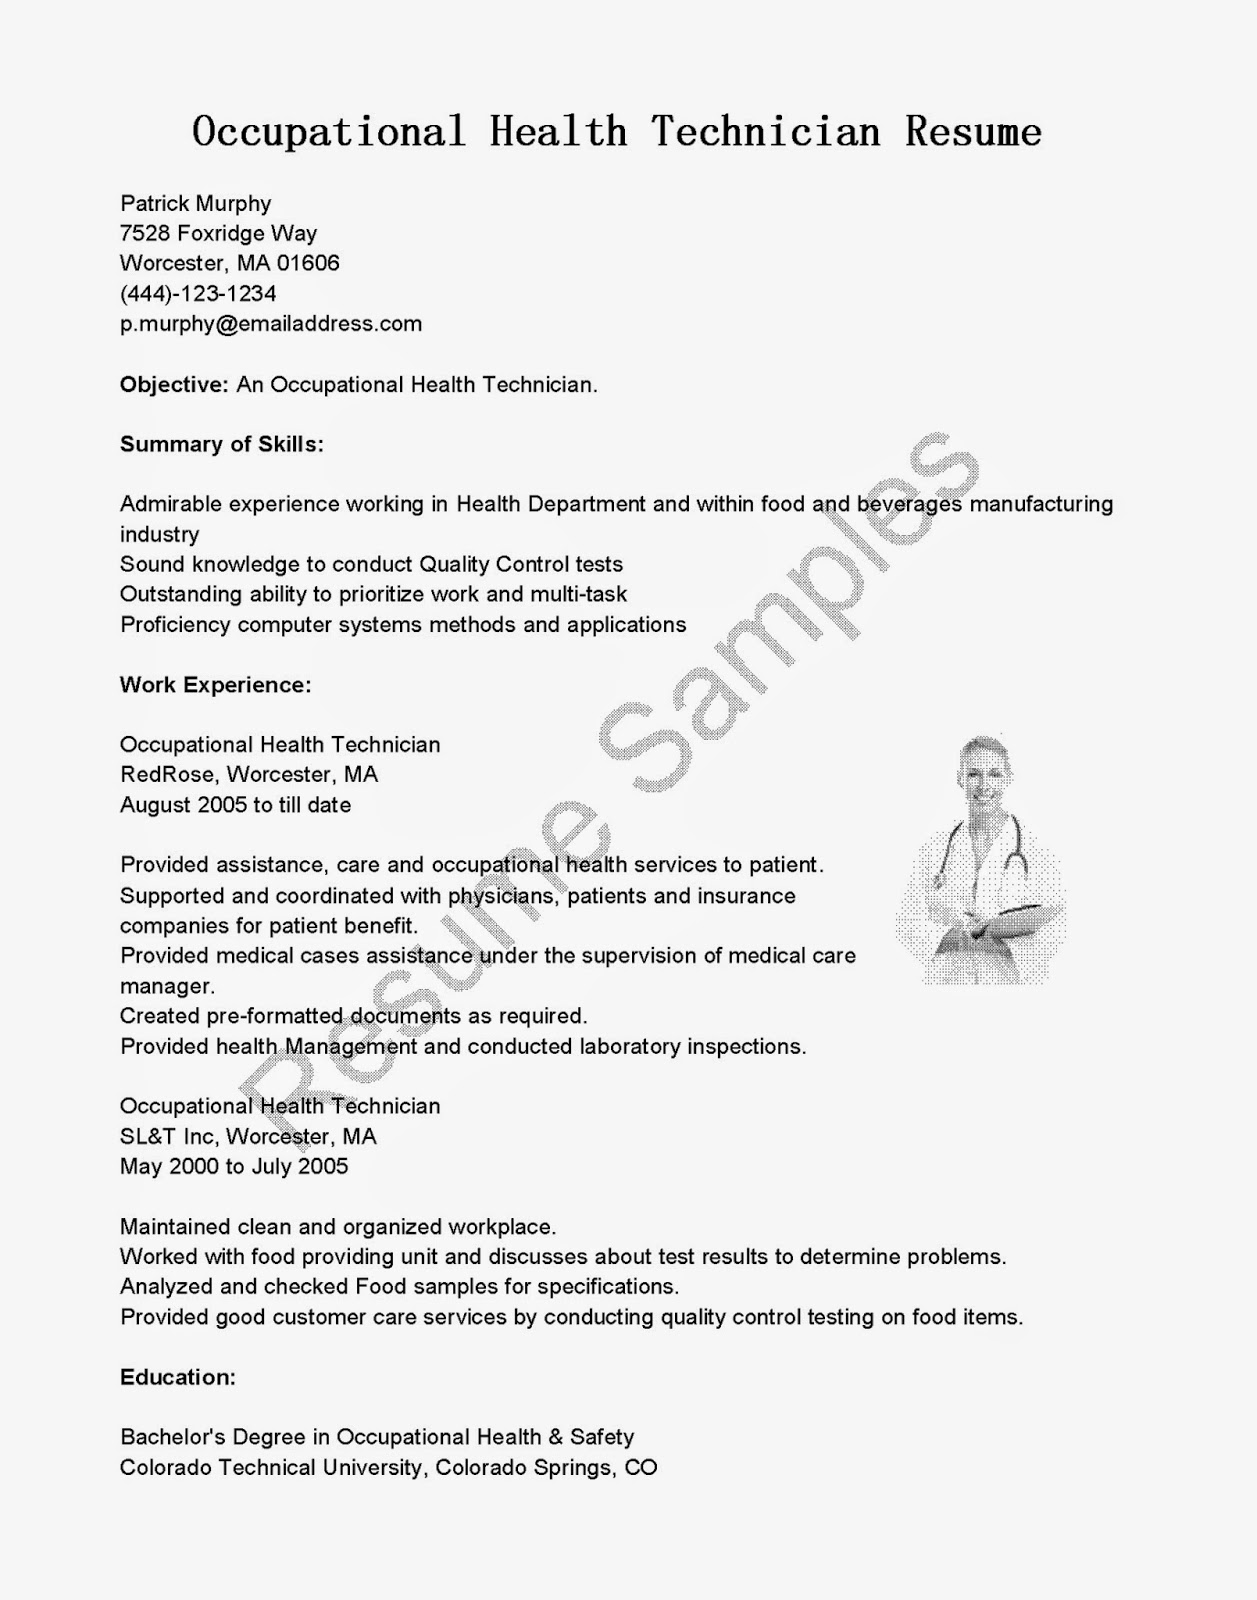 Resume Samples Occupational Health Technician Resume Sample